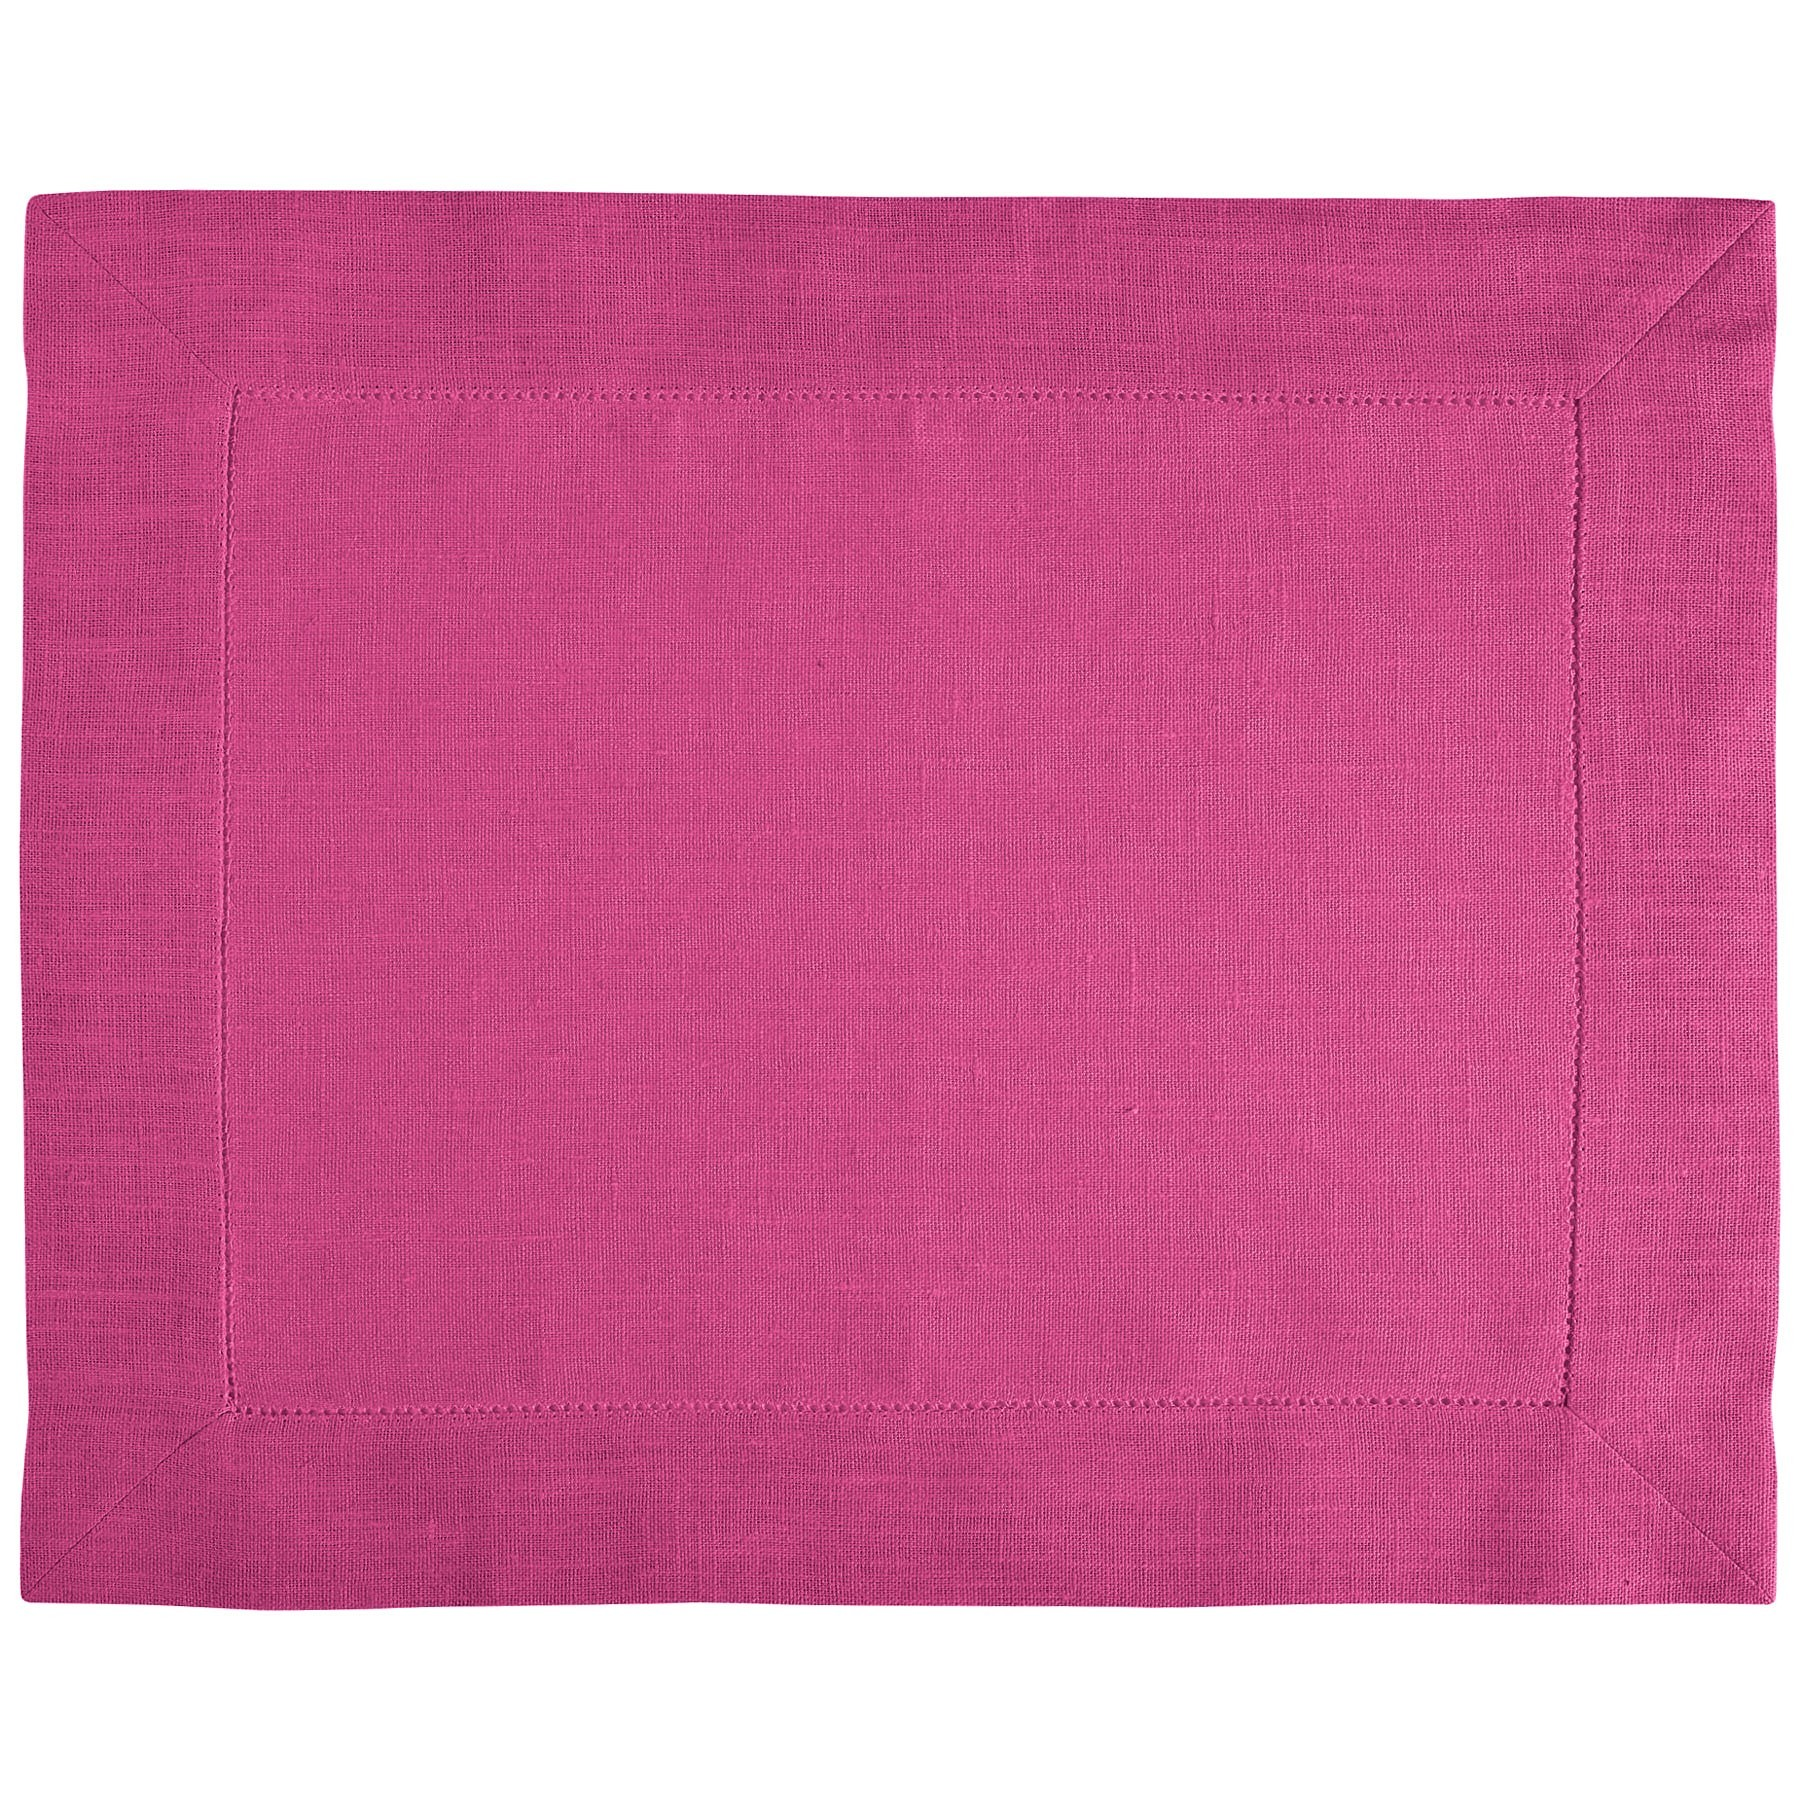 PLACEMAT <br />fuchsia